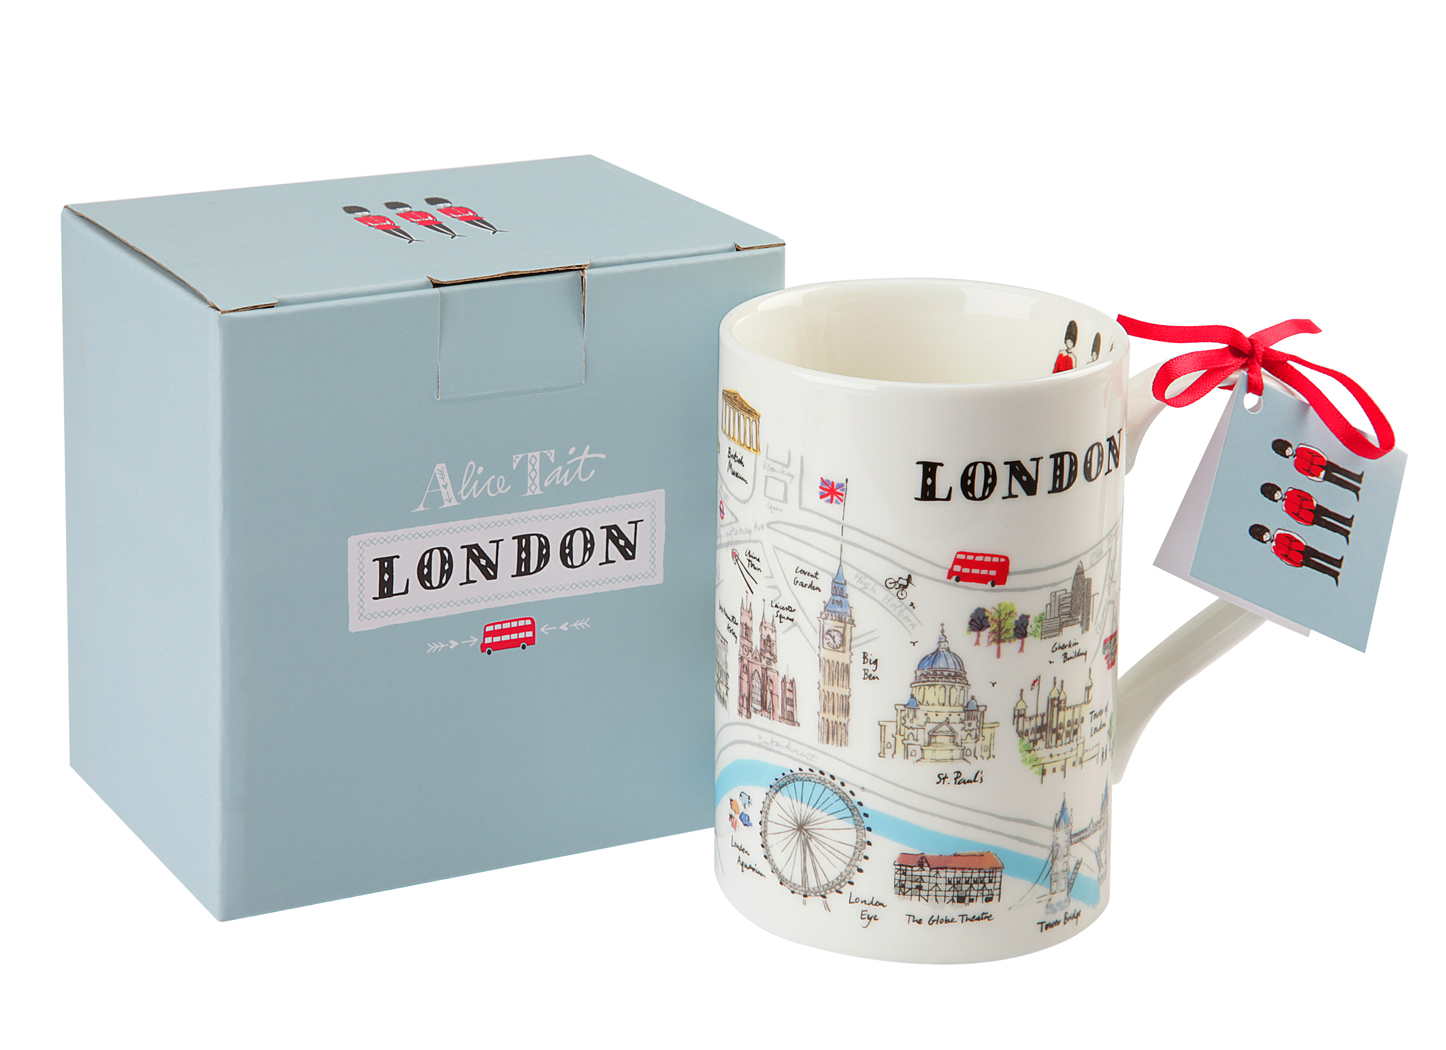 Alice Tait Map Of London Mug